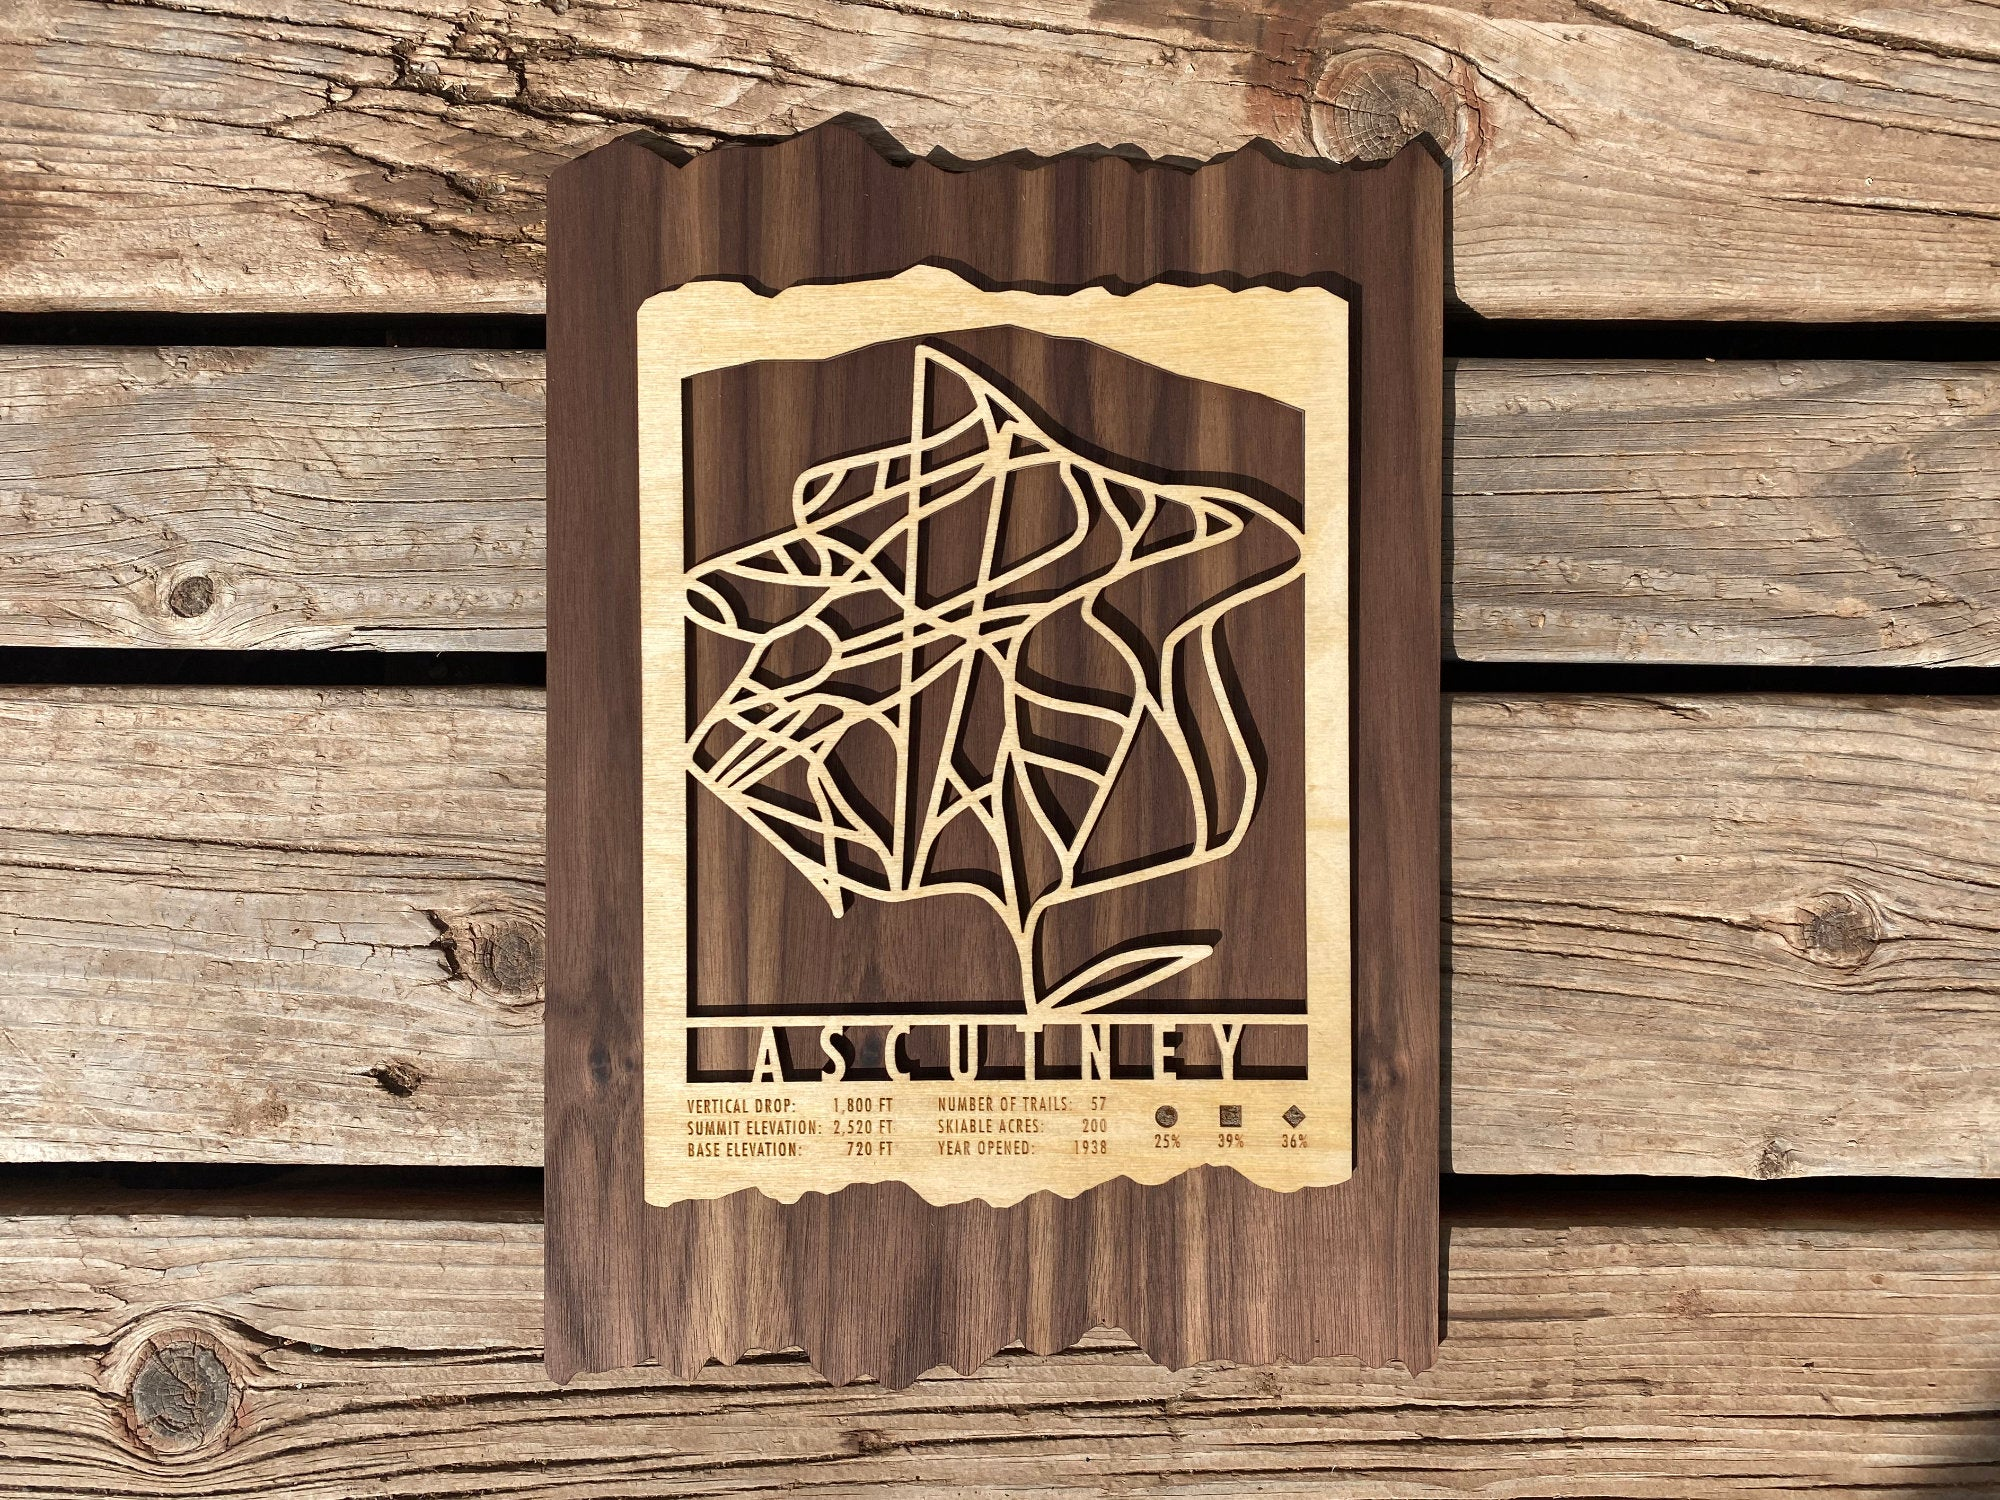 Ascutney Ski Decor Trail Map Art - MountainCut